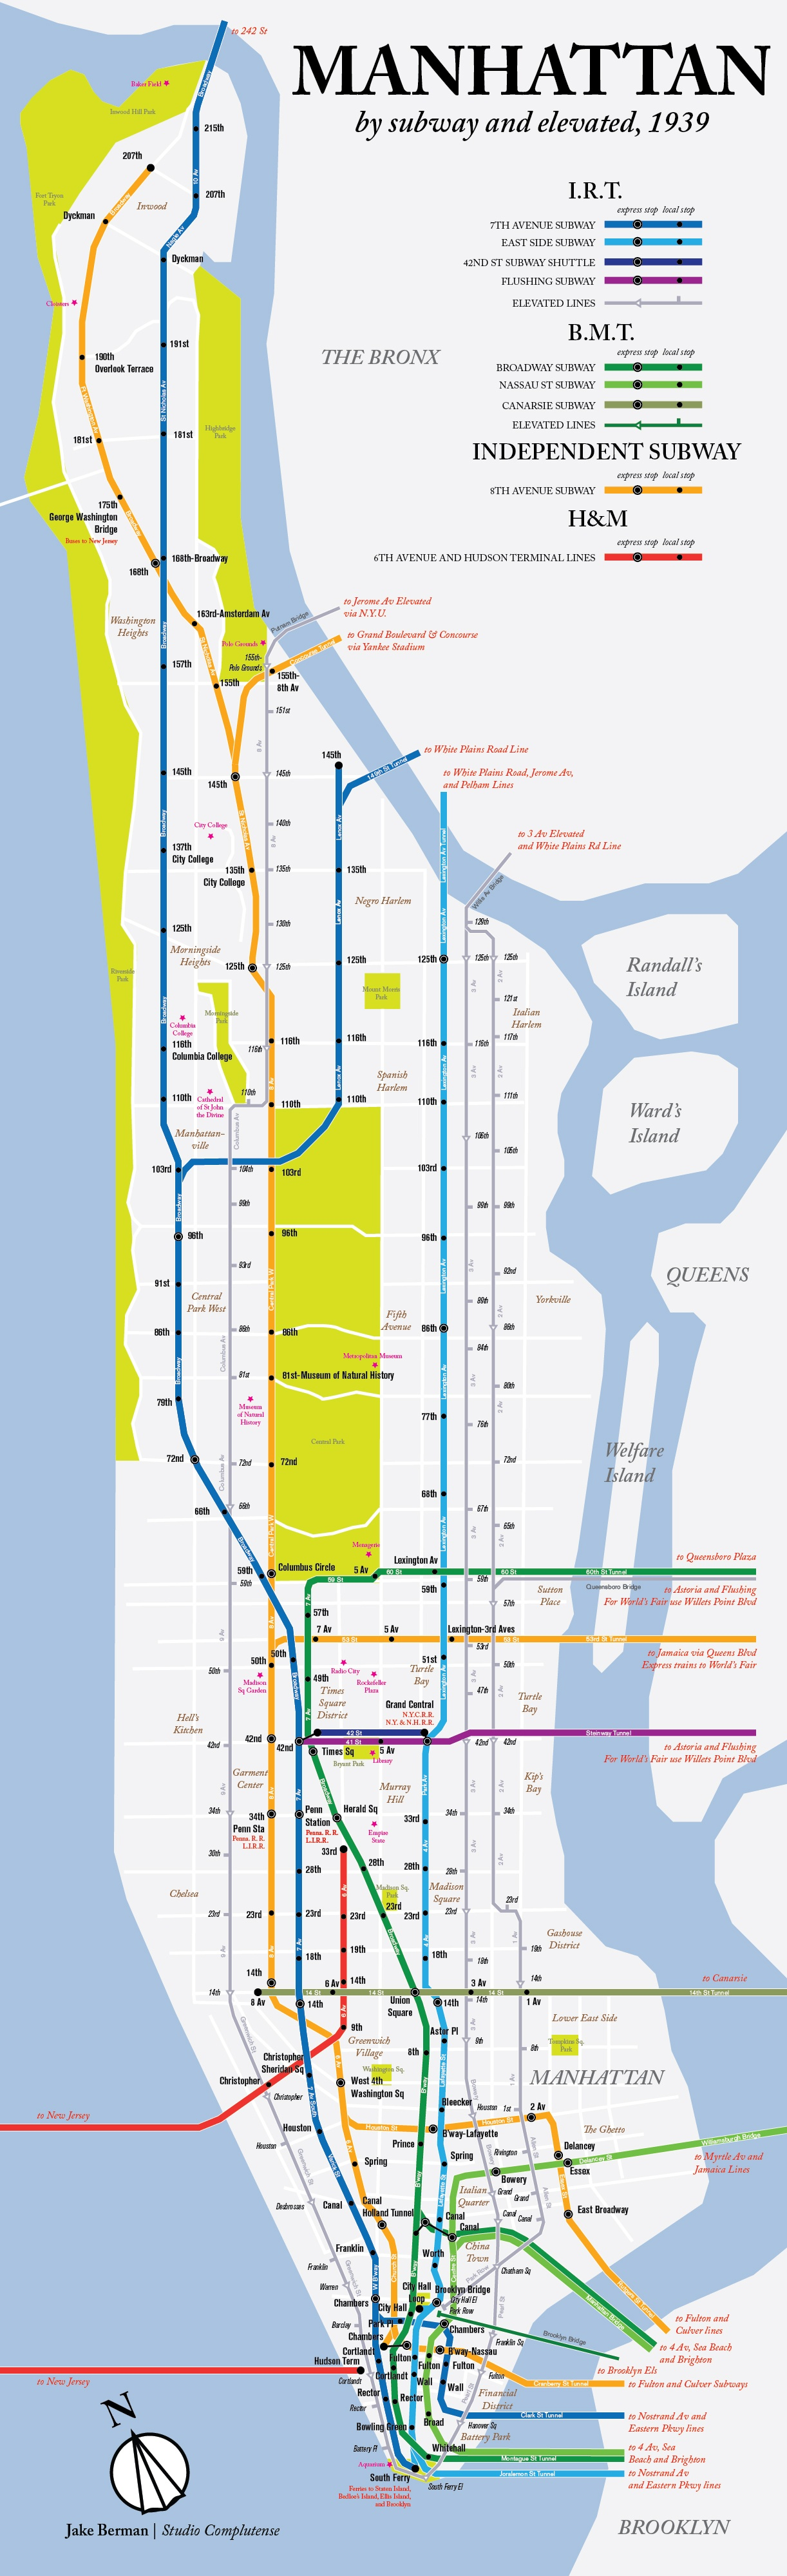 Map Here S What The Nyc Subway System Looked Like In 1939 6sqft